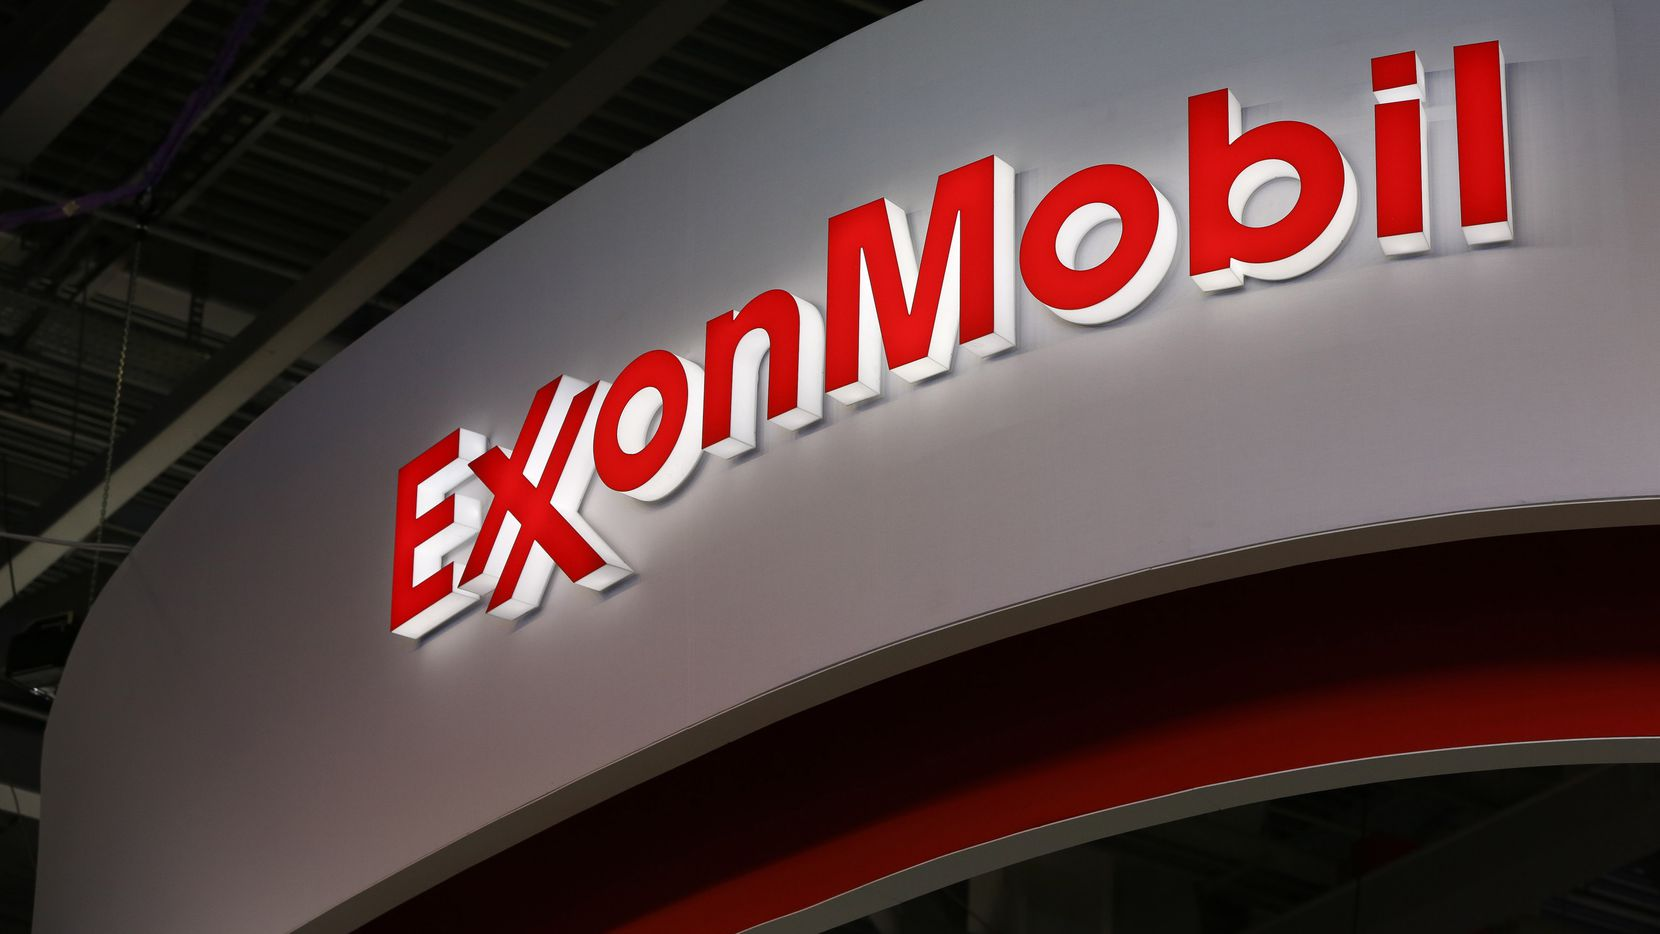 A logo sits illuminated outside the Exxon Mobil Corp. corporate pavilion during the 21st World Petroleum Congress in Moscow, Russia, on Monday, June 16, 2014. (Andrey Rudakov/Bloomberg)